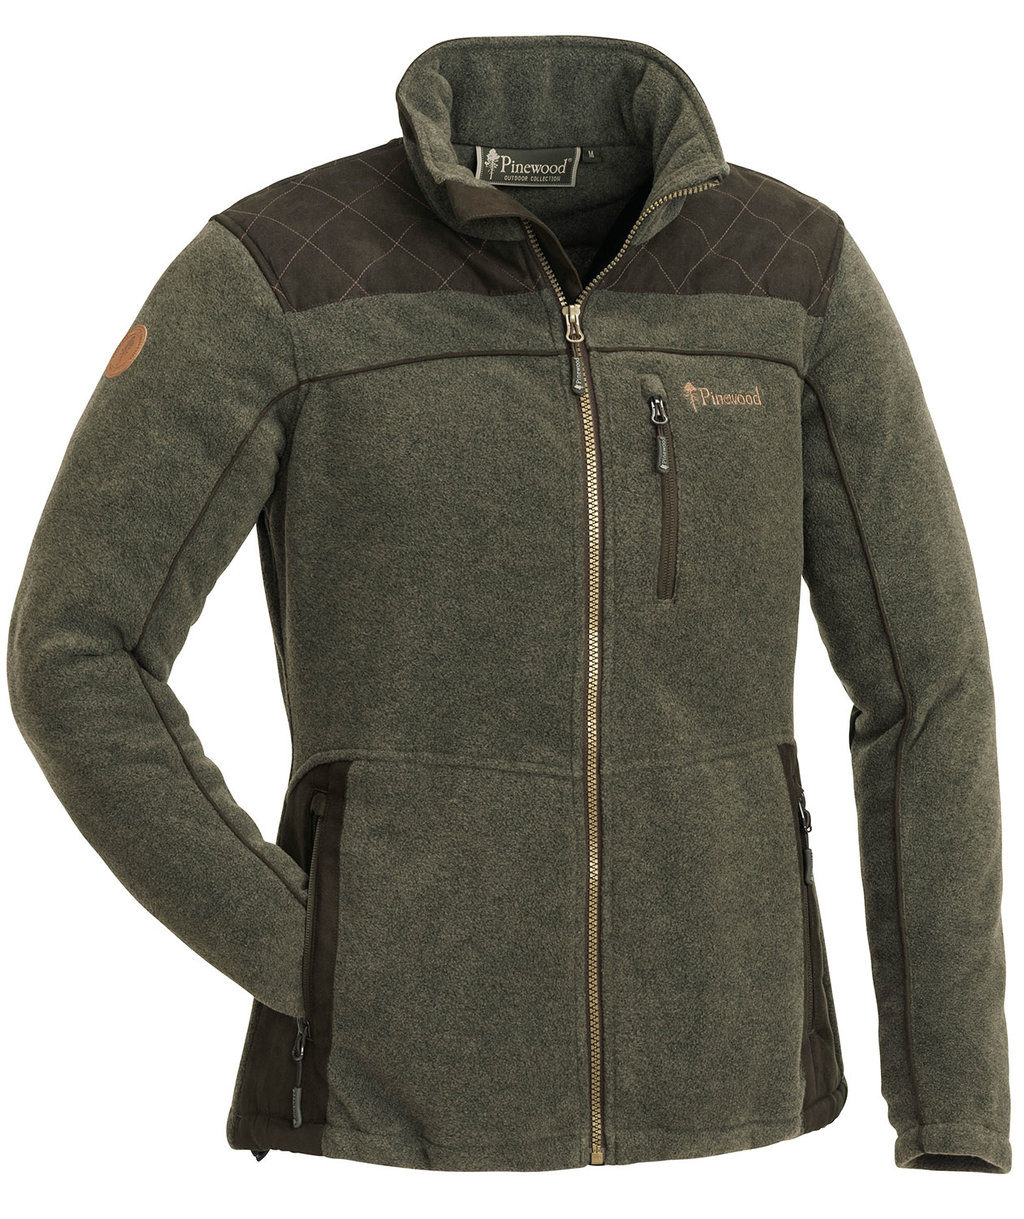 Pinewood Diana women's fleece jacket, Olive Melange/Suede Brown